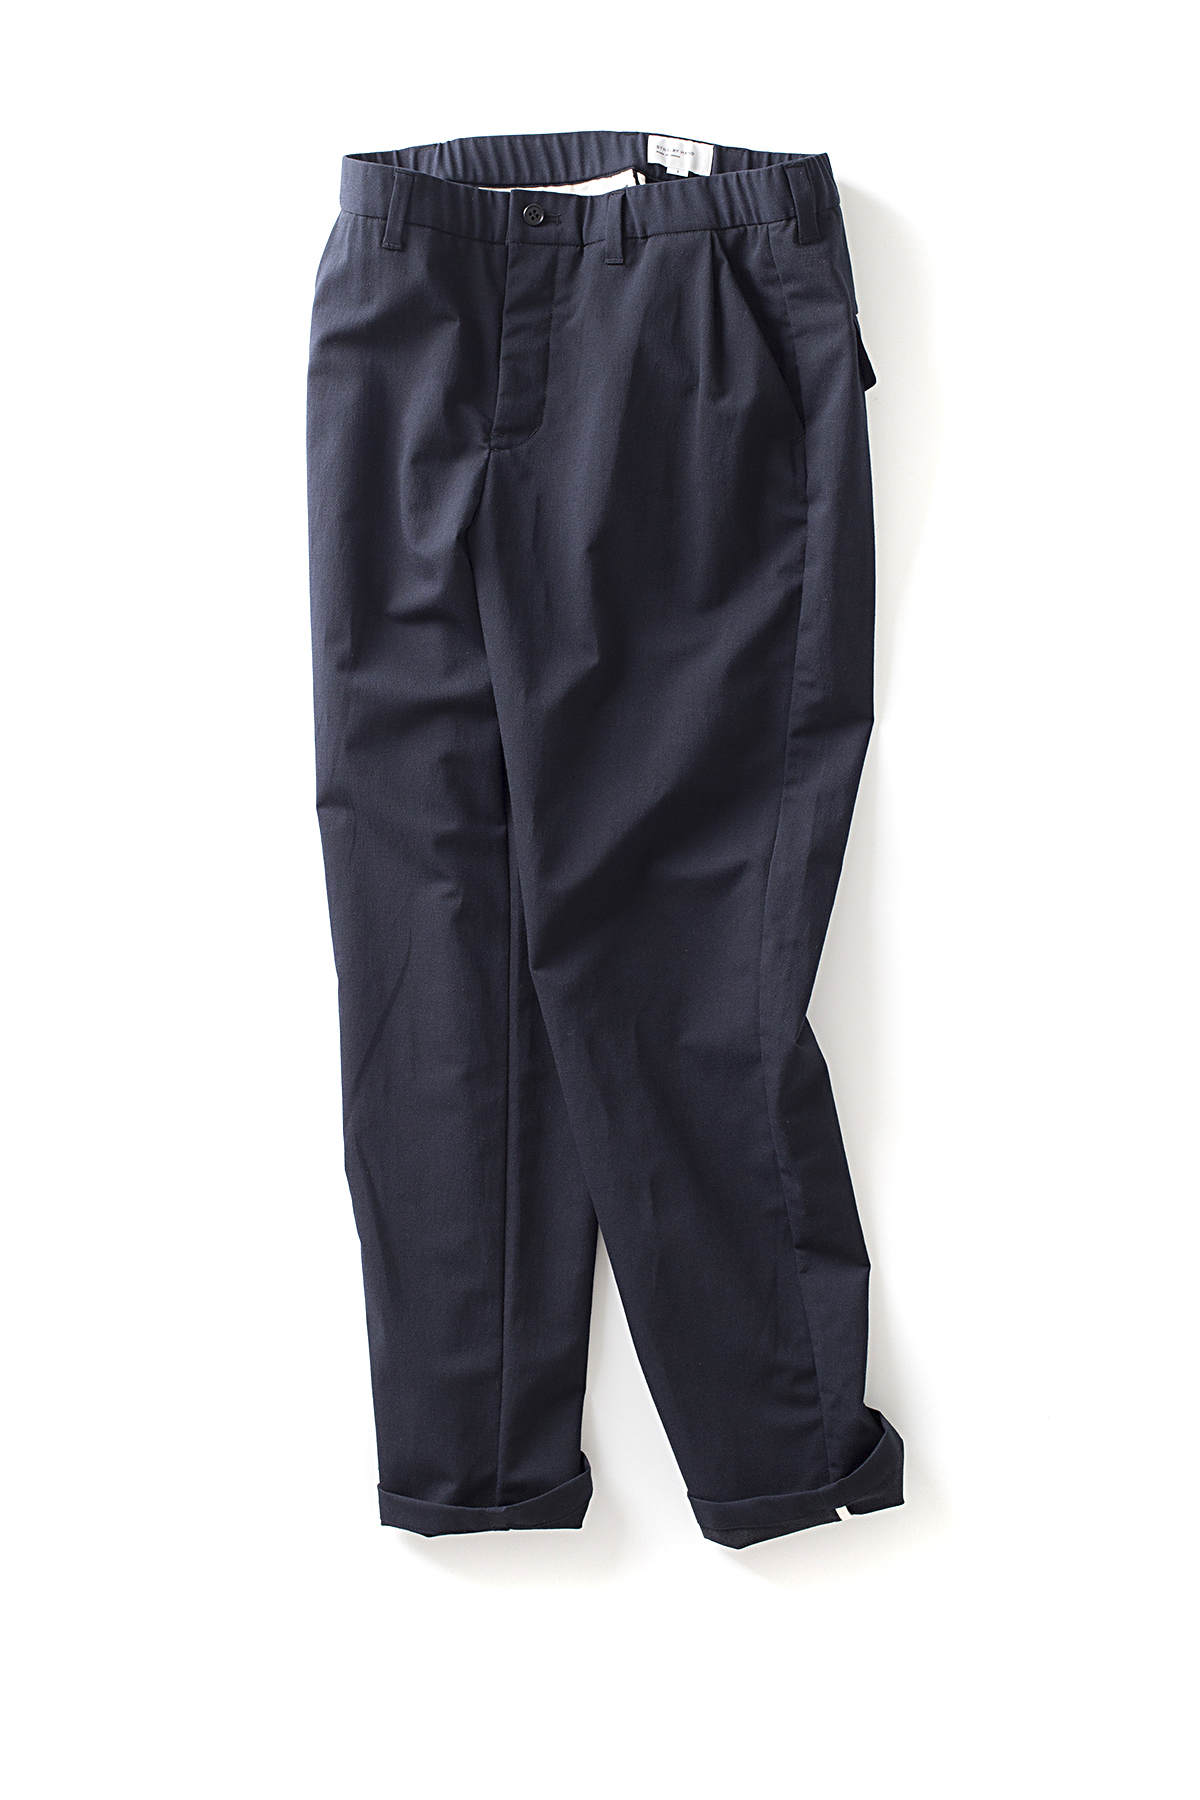 Still By Hand : Urethane Inner Coating Pants (Navy)